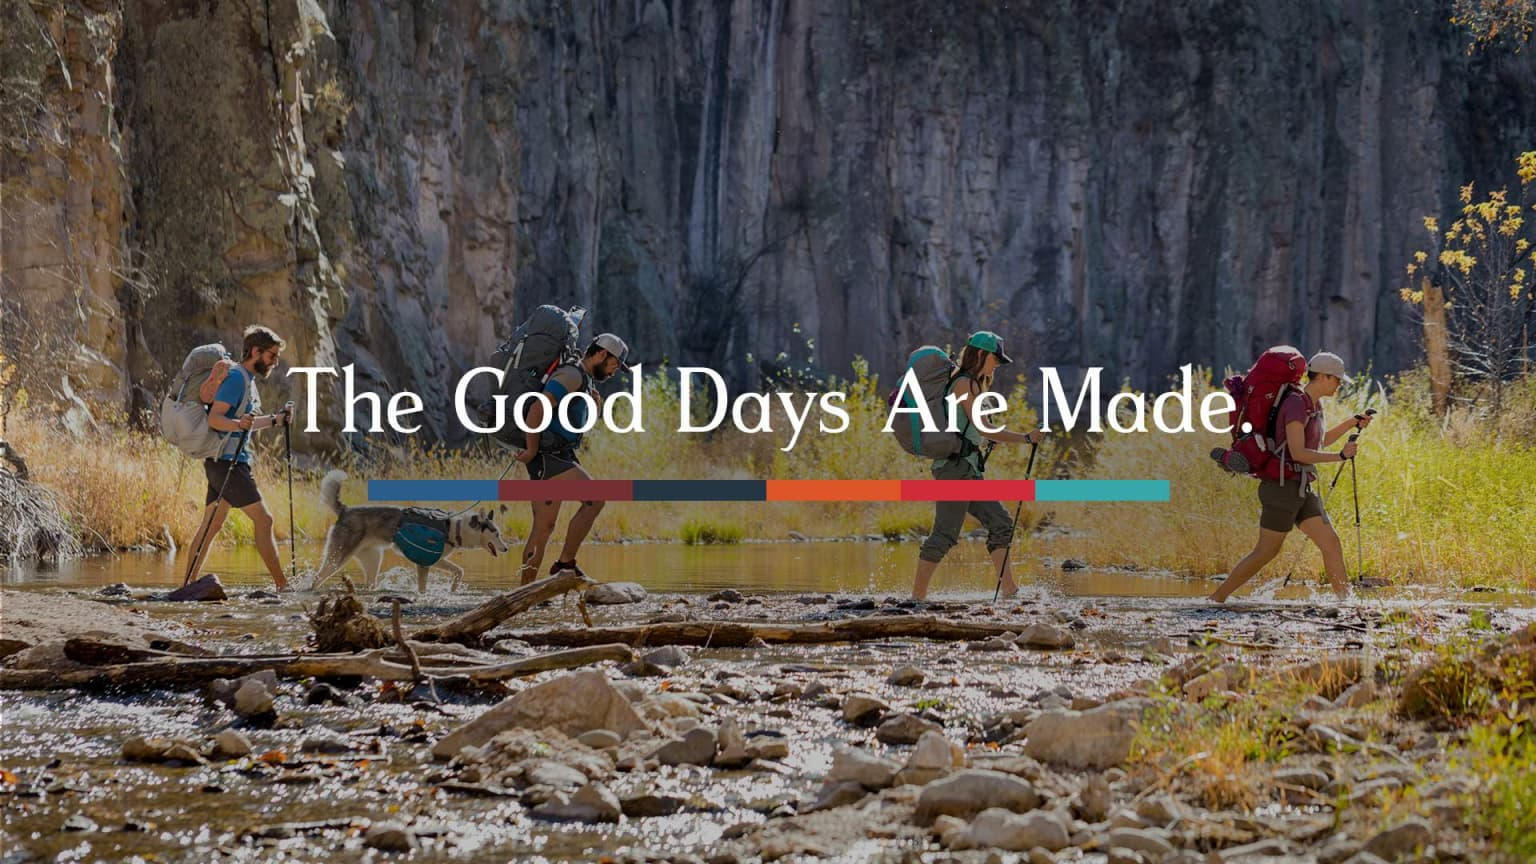 Osprey | The Good Days Are Made Campaign